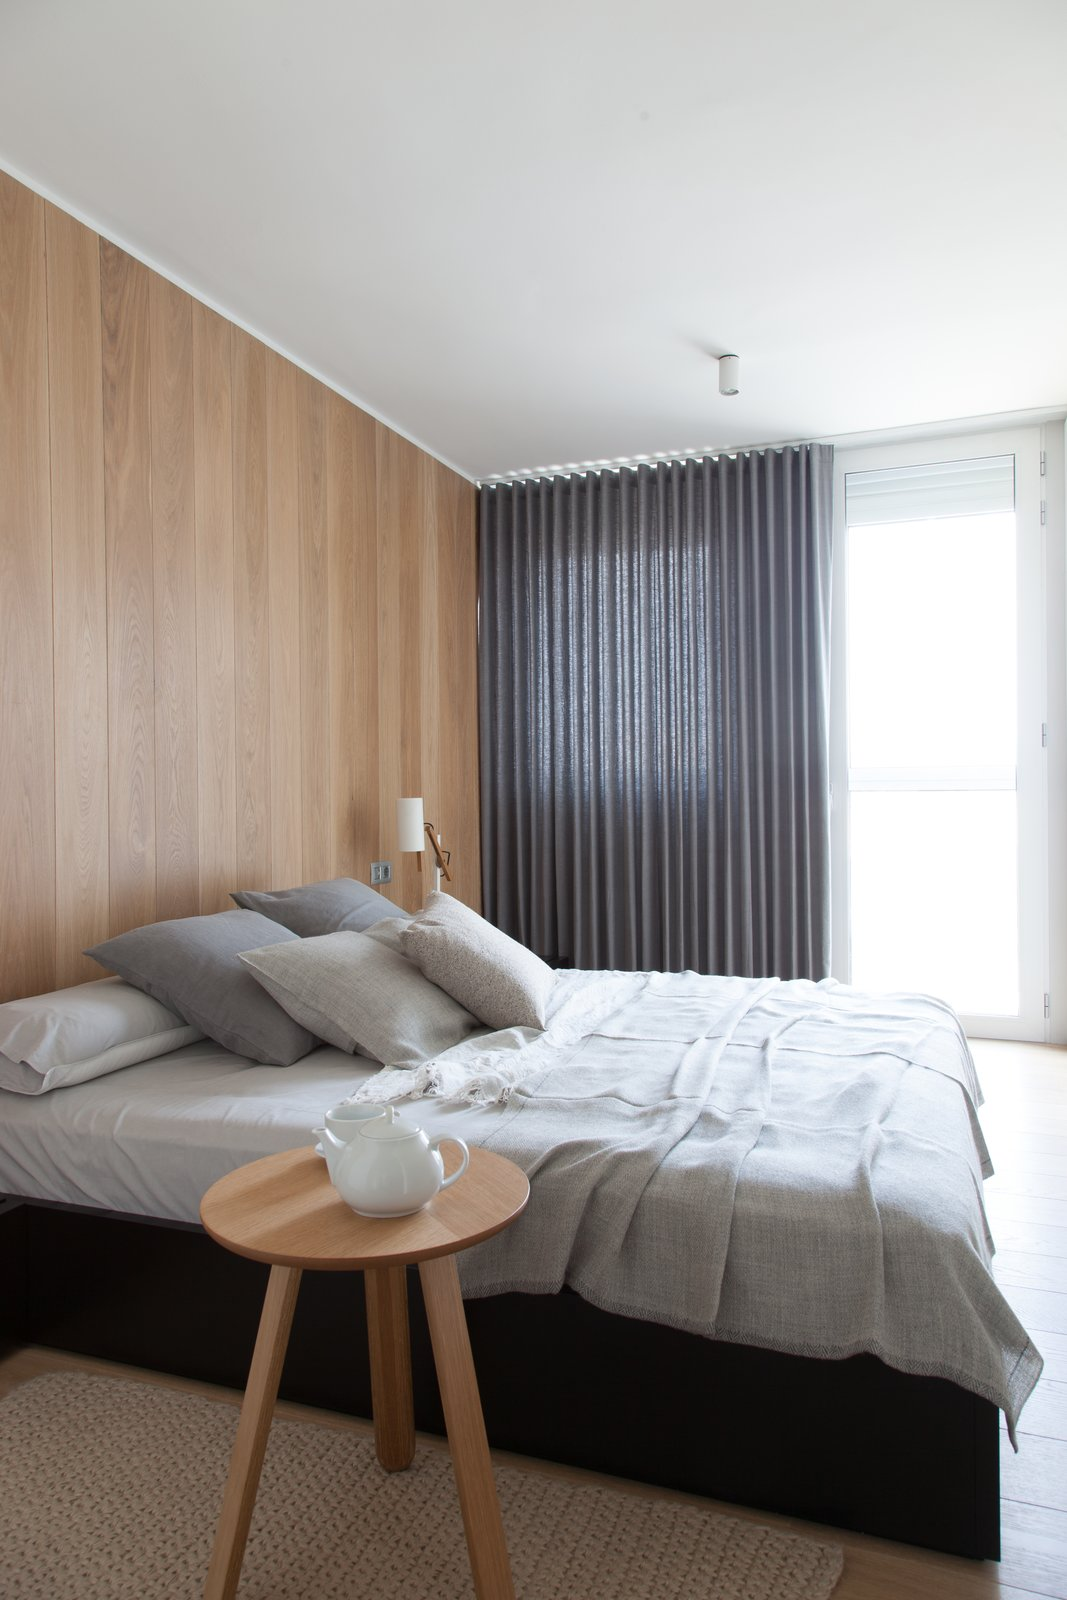 #bedroom #modern #architecture #modernarchitecture #bed #minimal #linen #renovation #Barcelona #Spain #YLABArquitectosBarcelona   Bedrooms I would not kick out of bed for eating crackers from lightness